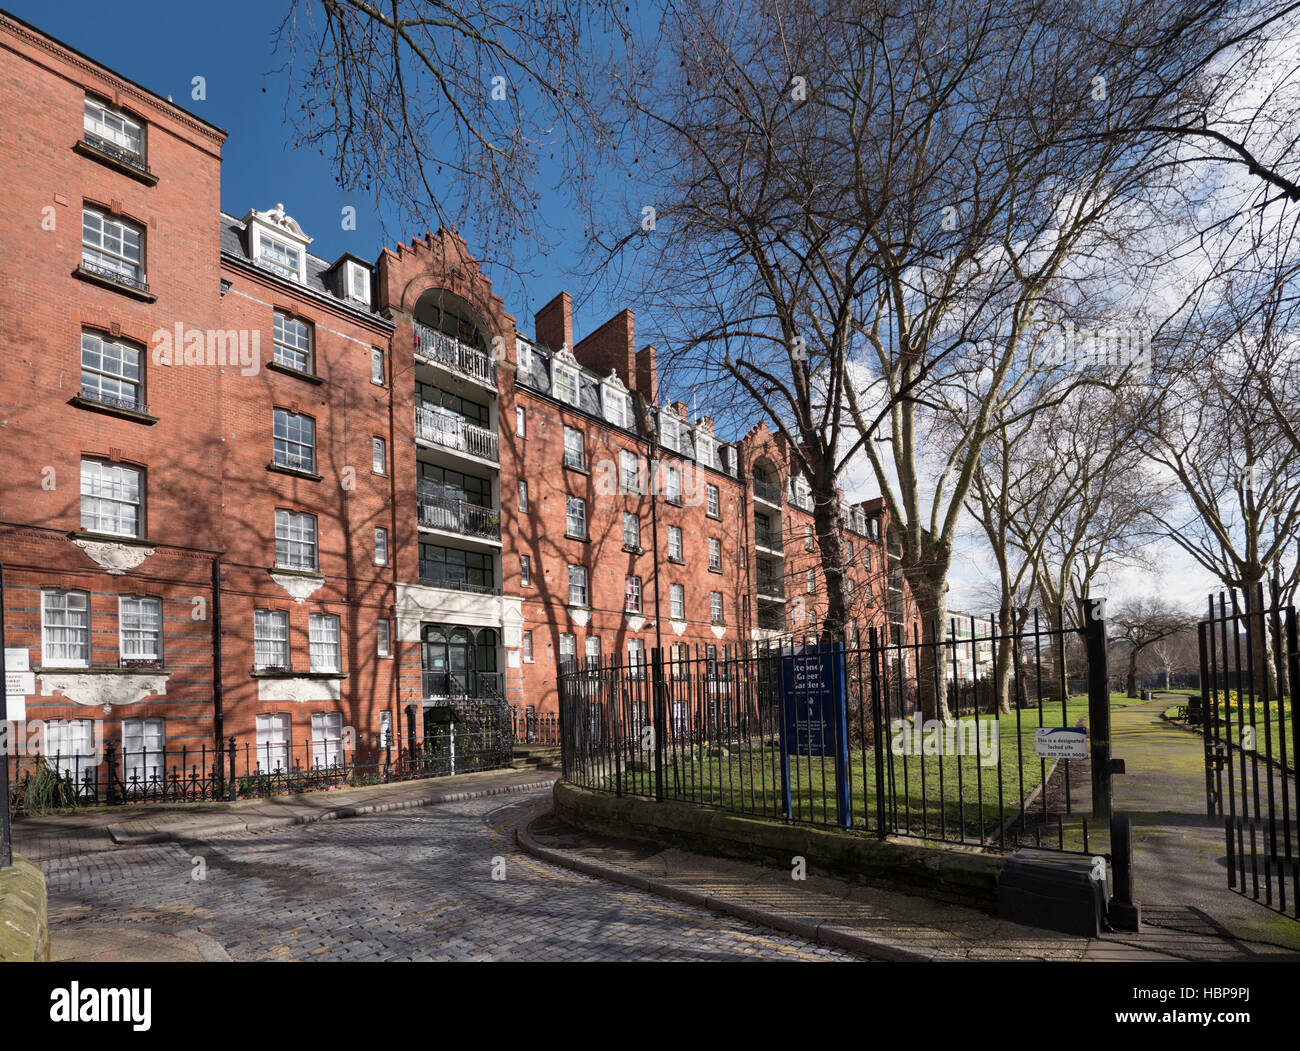 Stepney Green Court, Four Per Cent Industrial Dwelling Society social housing built in 1896, sponsored by Lord Rothschild - Stock Image